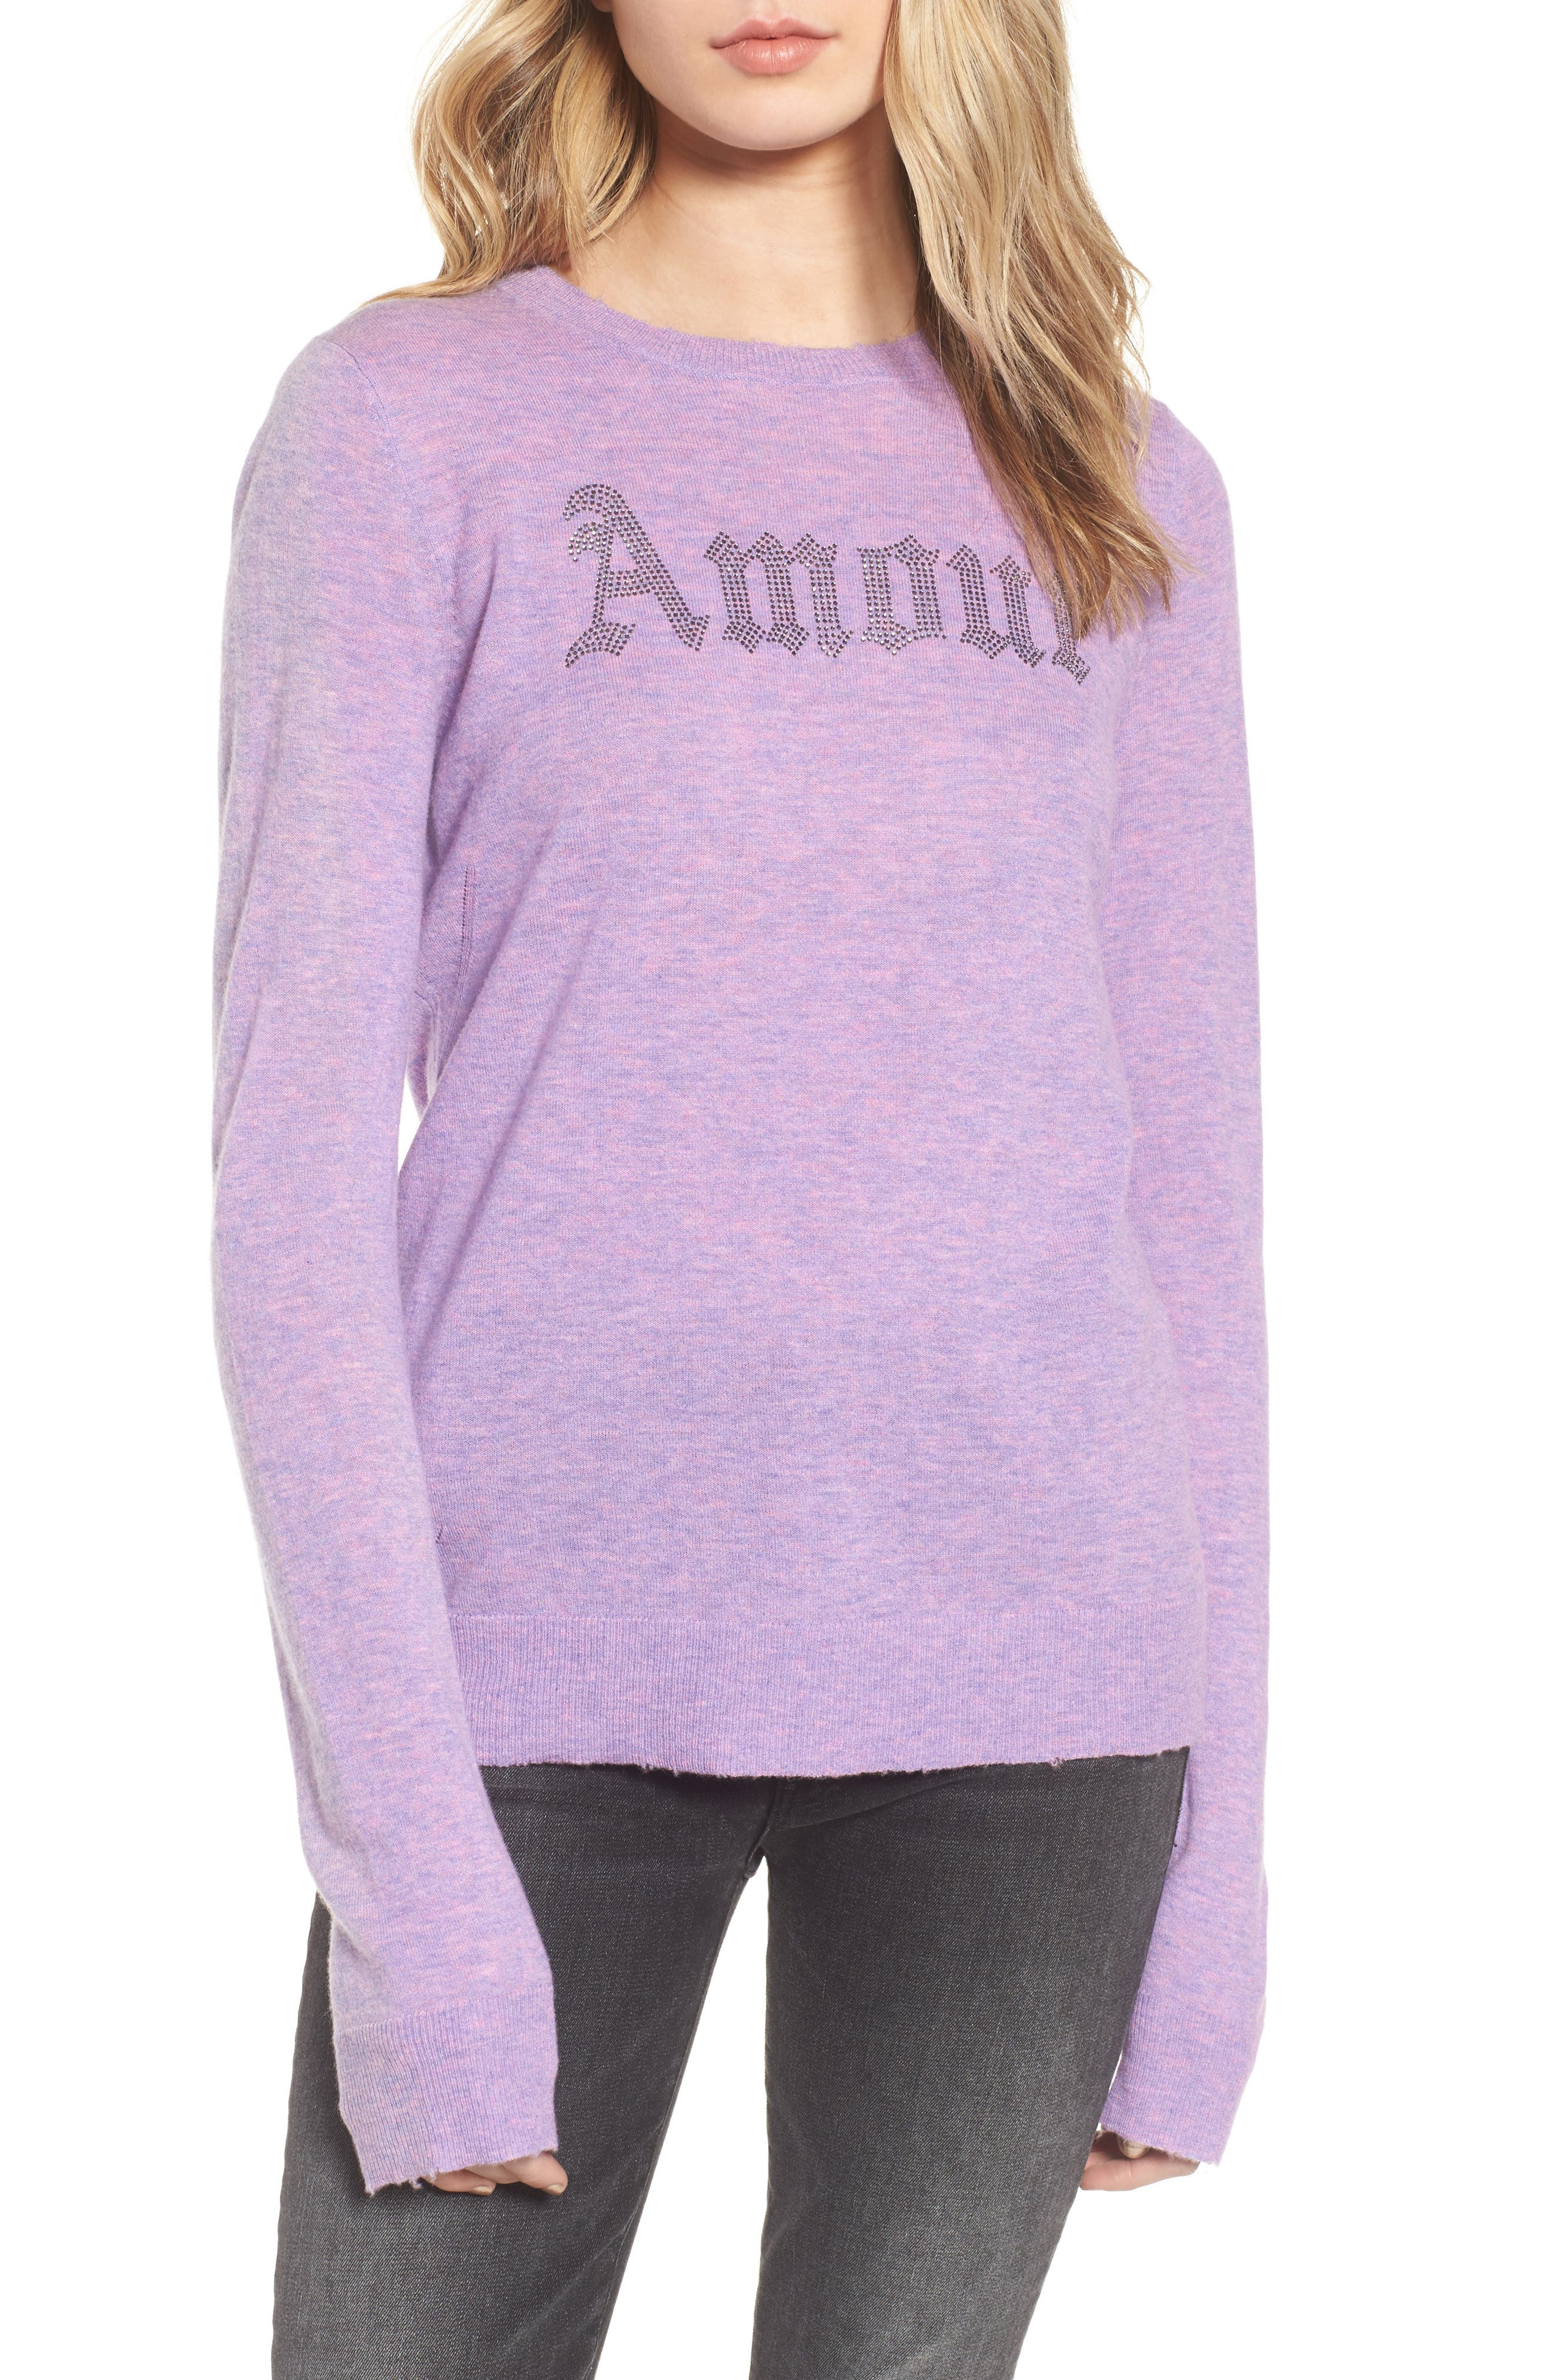 Miss Bis Cashmere Sweater,                         Main,                         color, Lilac